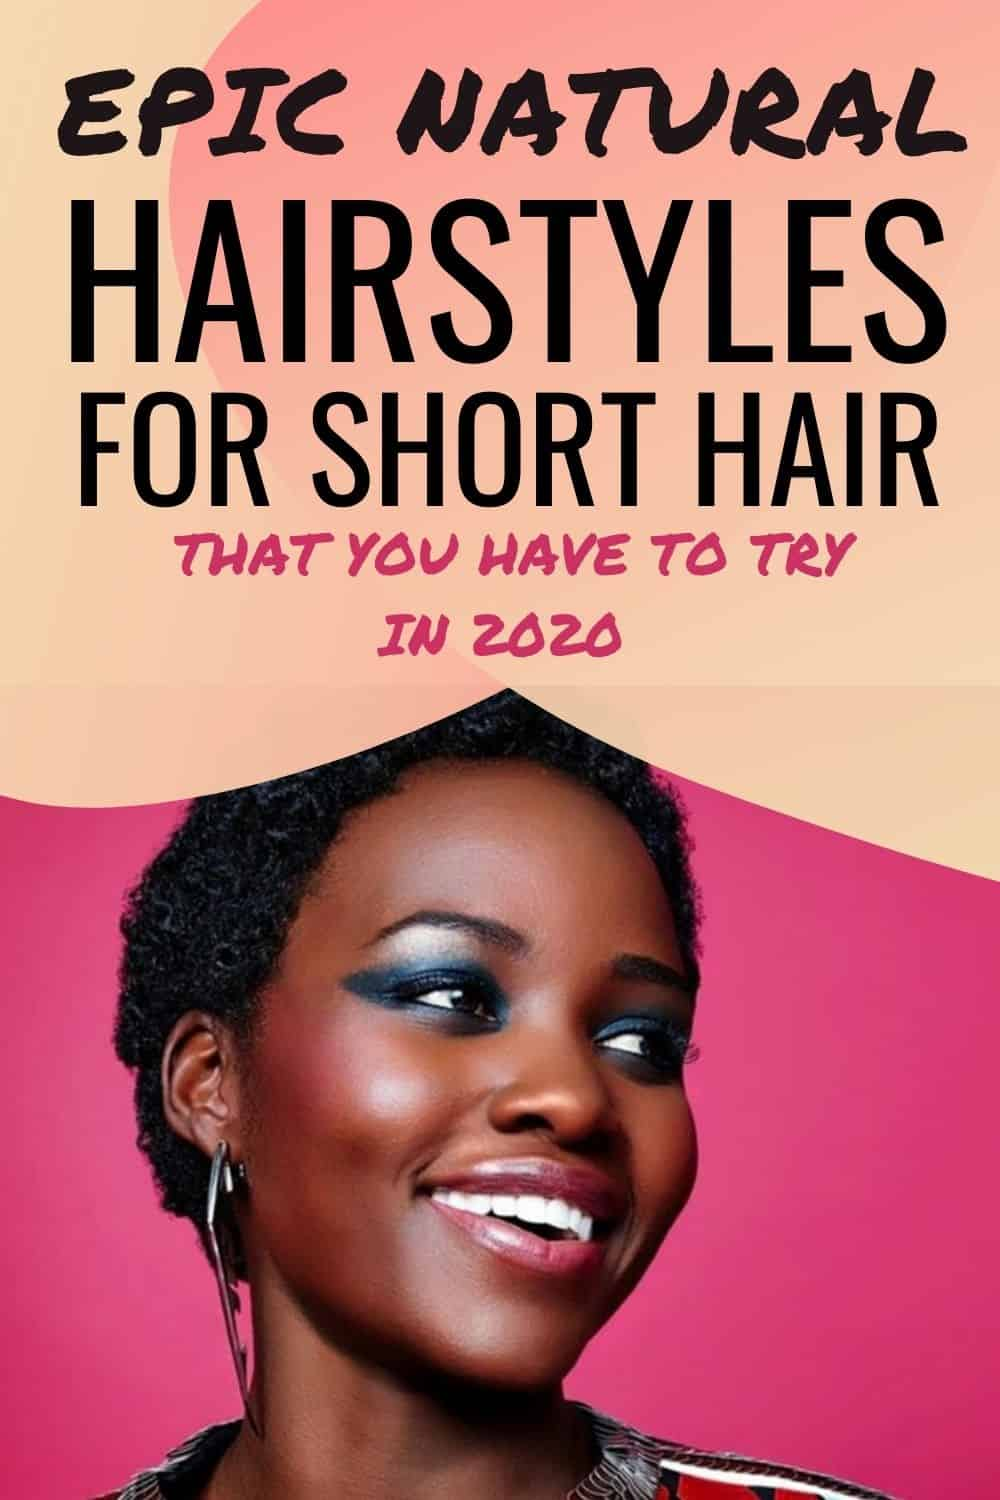 25 Amazing Styles For Short Natural Hair You Can Rock In 2020